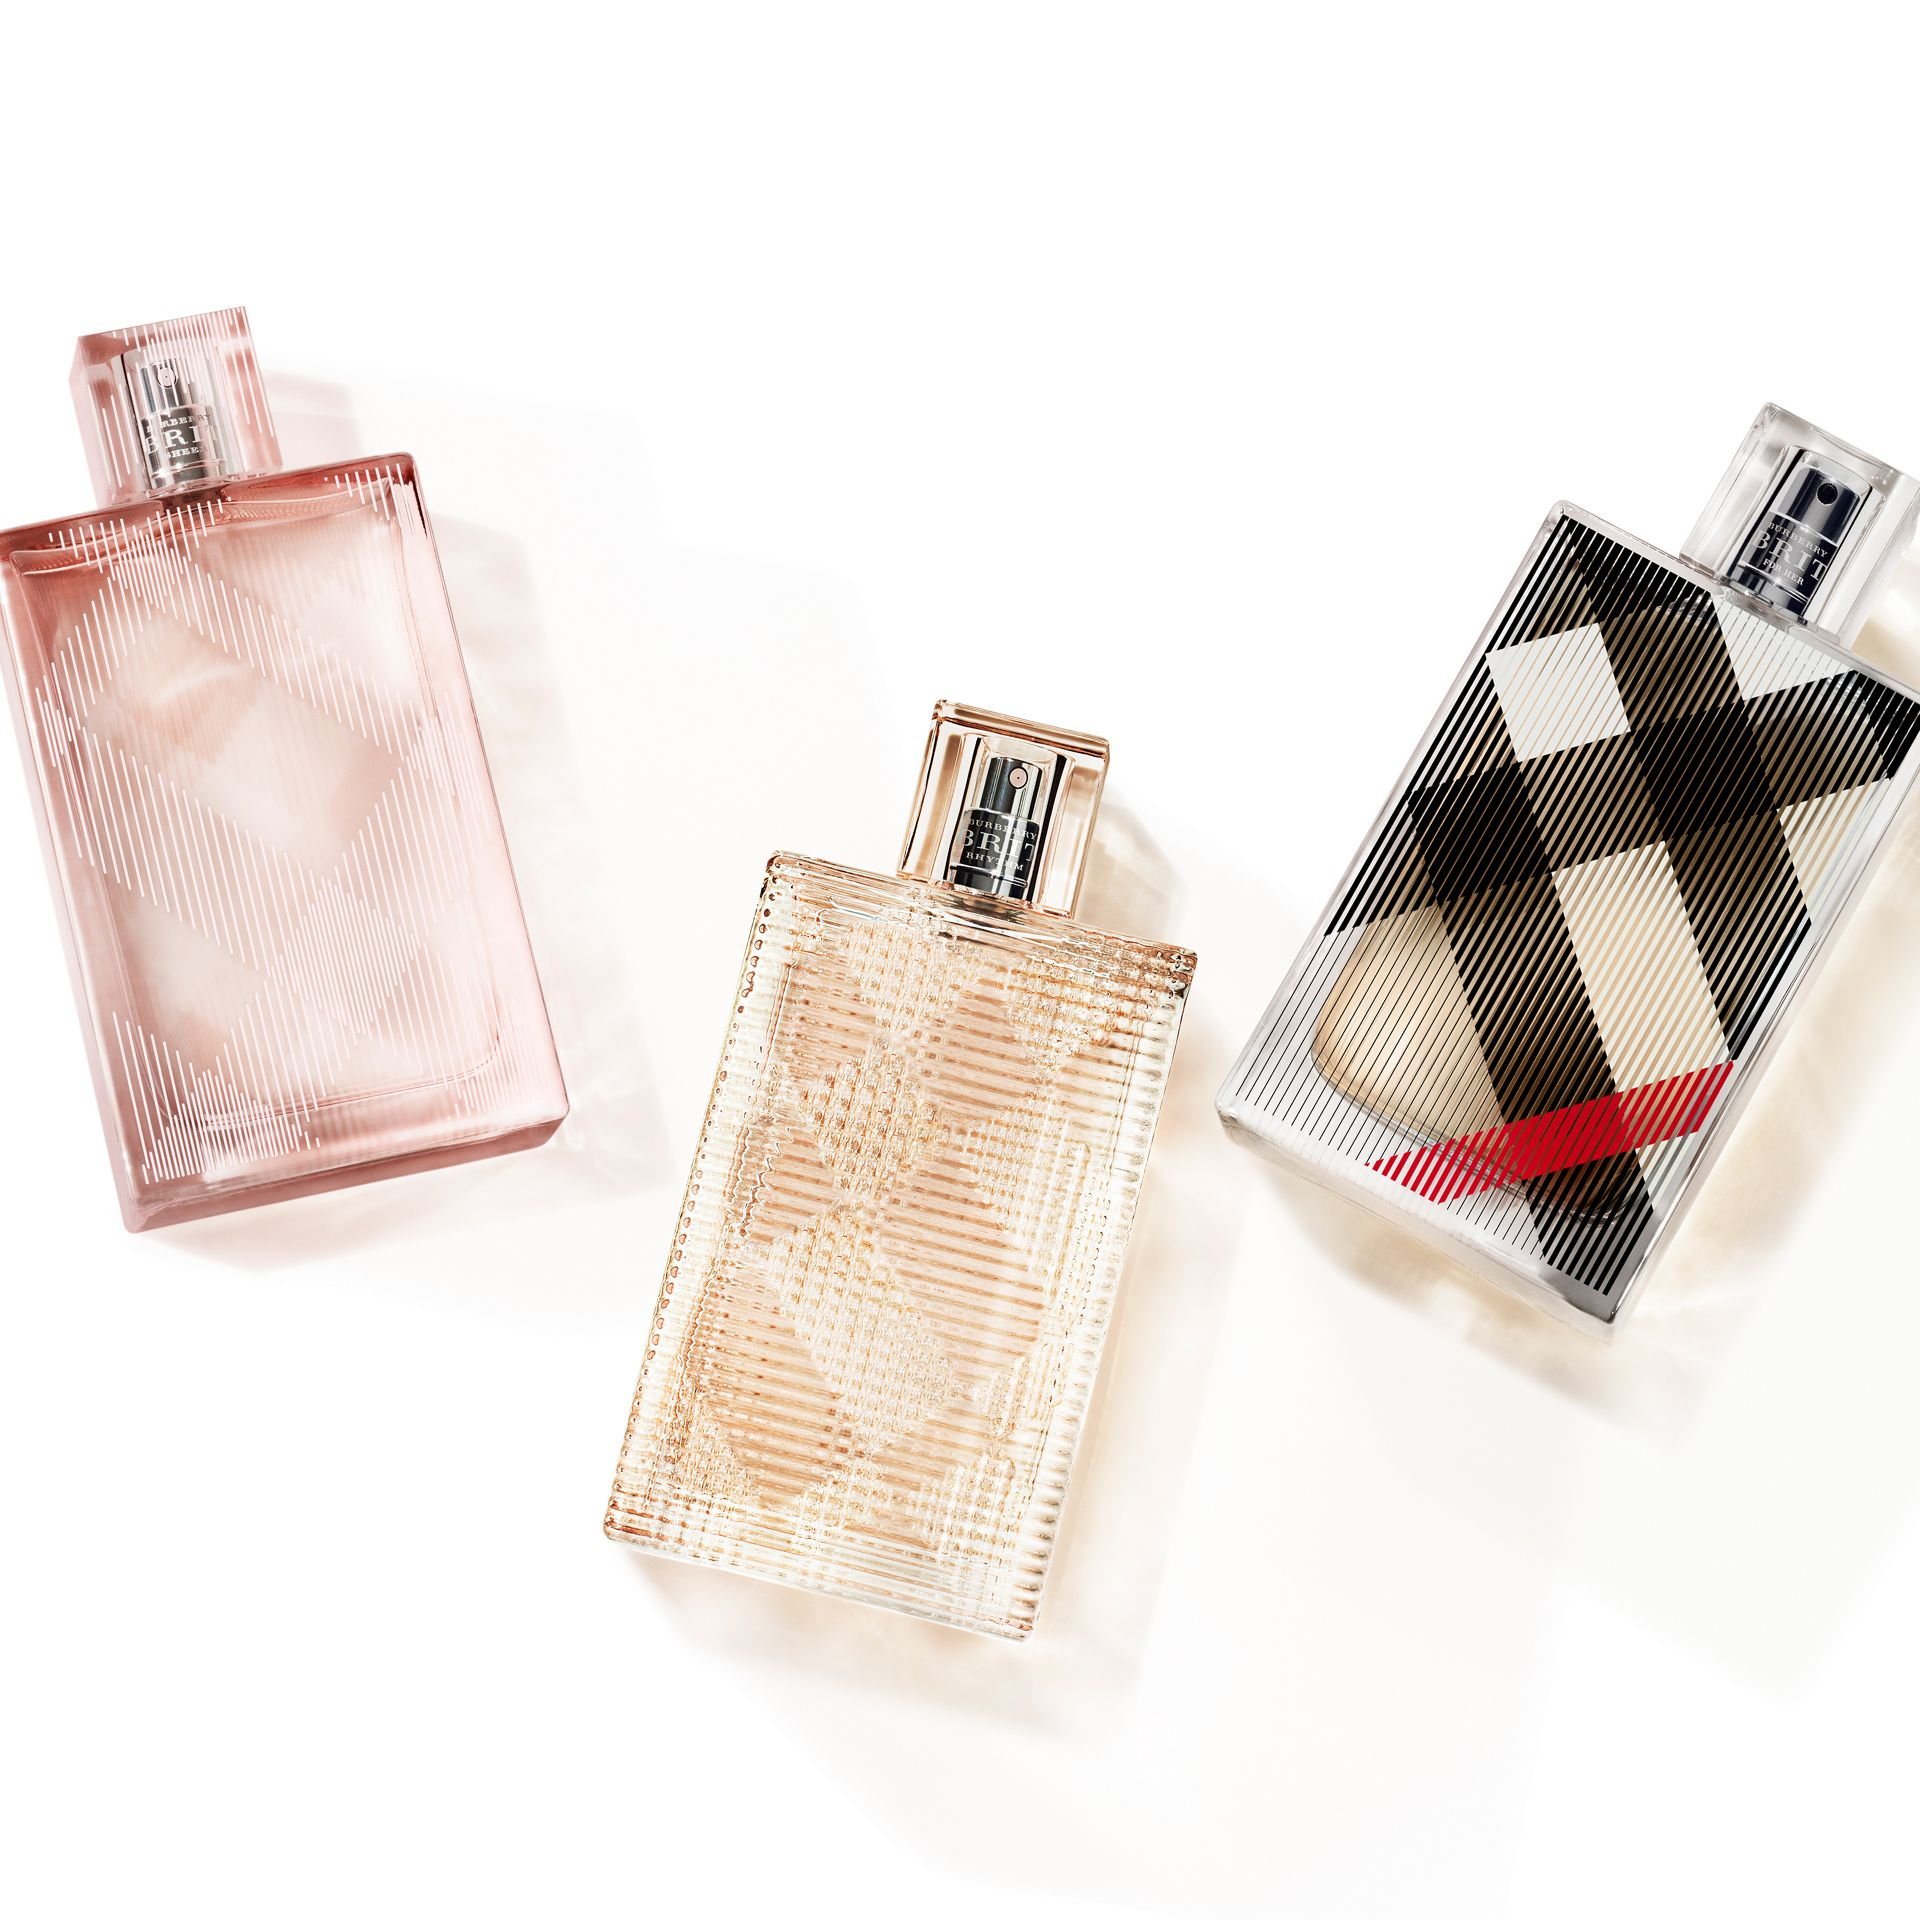 Burberry Brit For Her Eau de Toilette 100 ml - Donna | Burberry - immagine della galleria 4